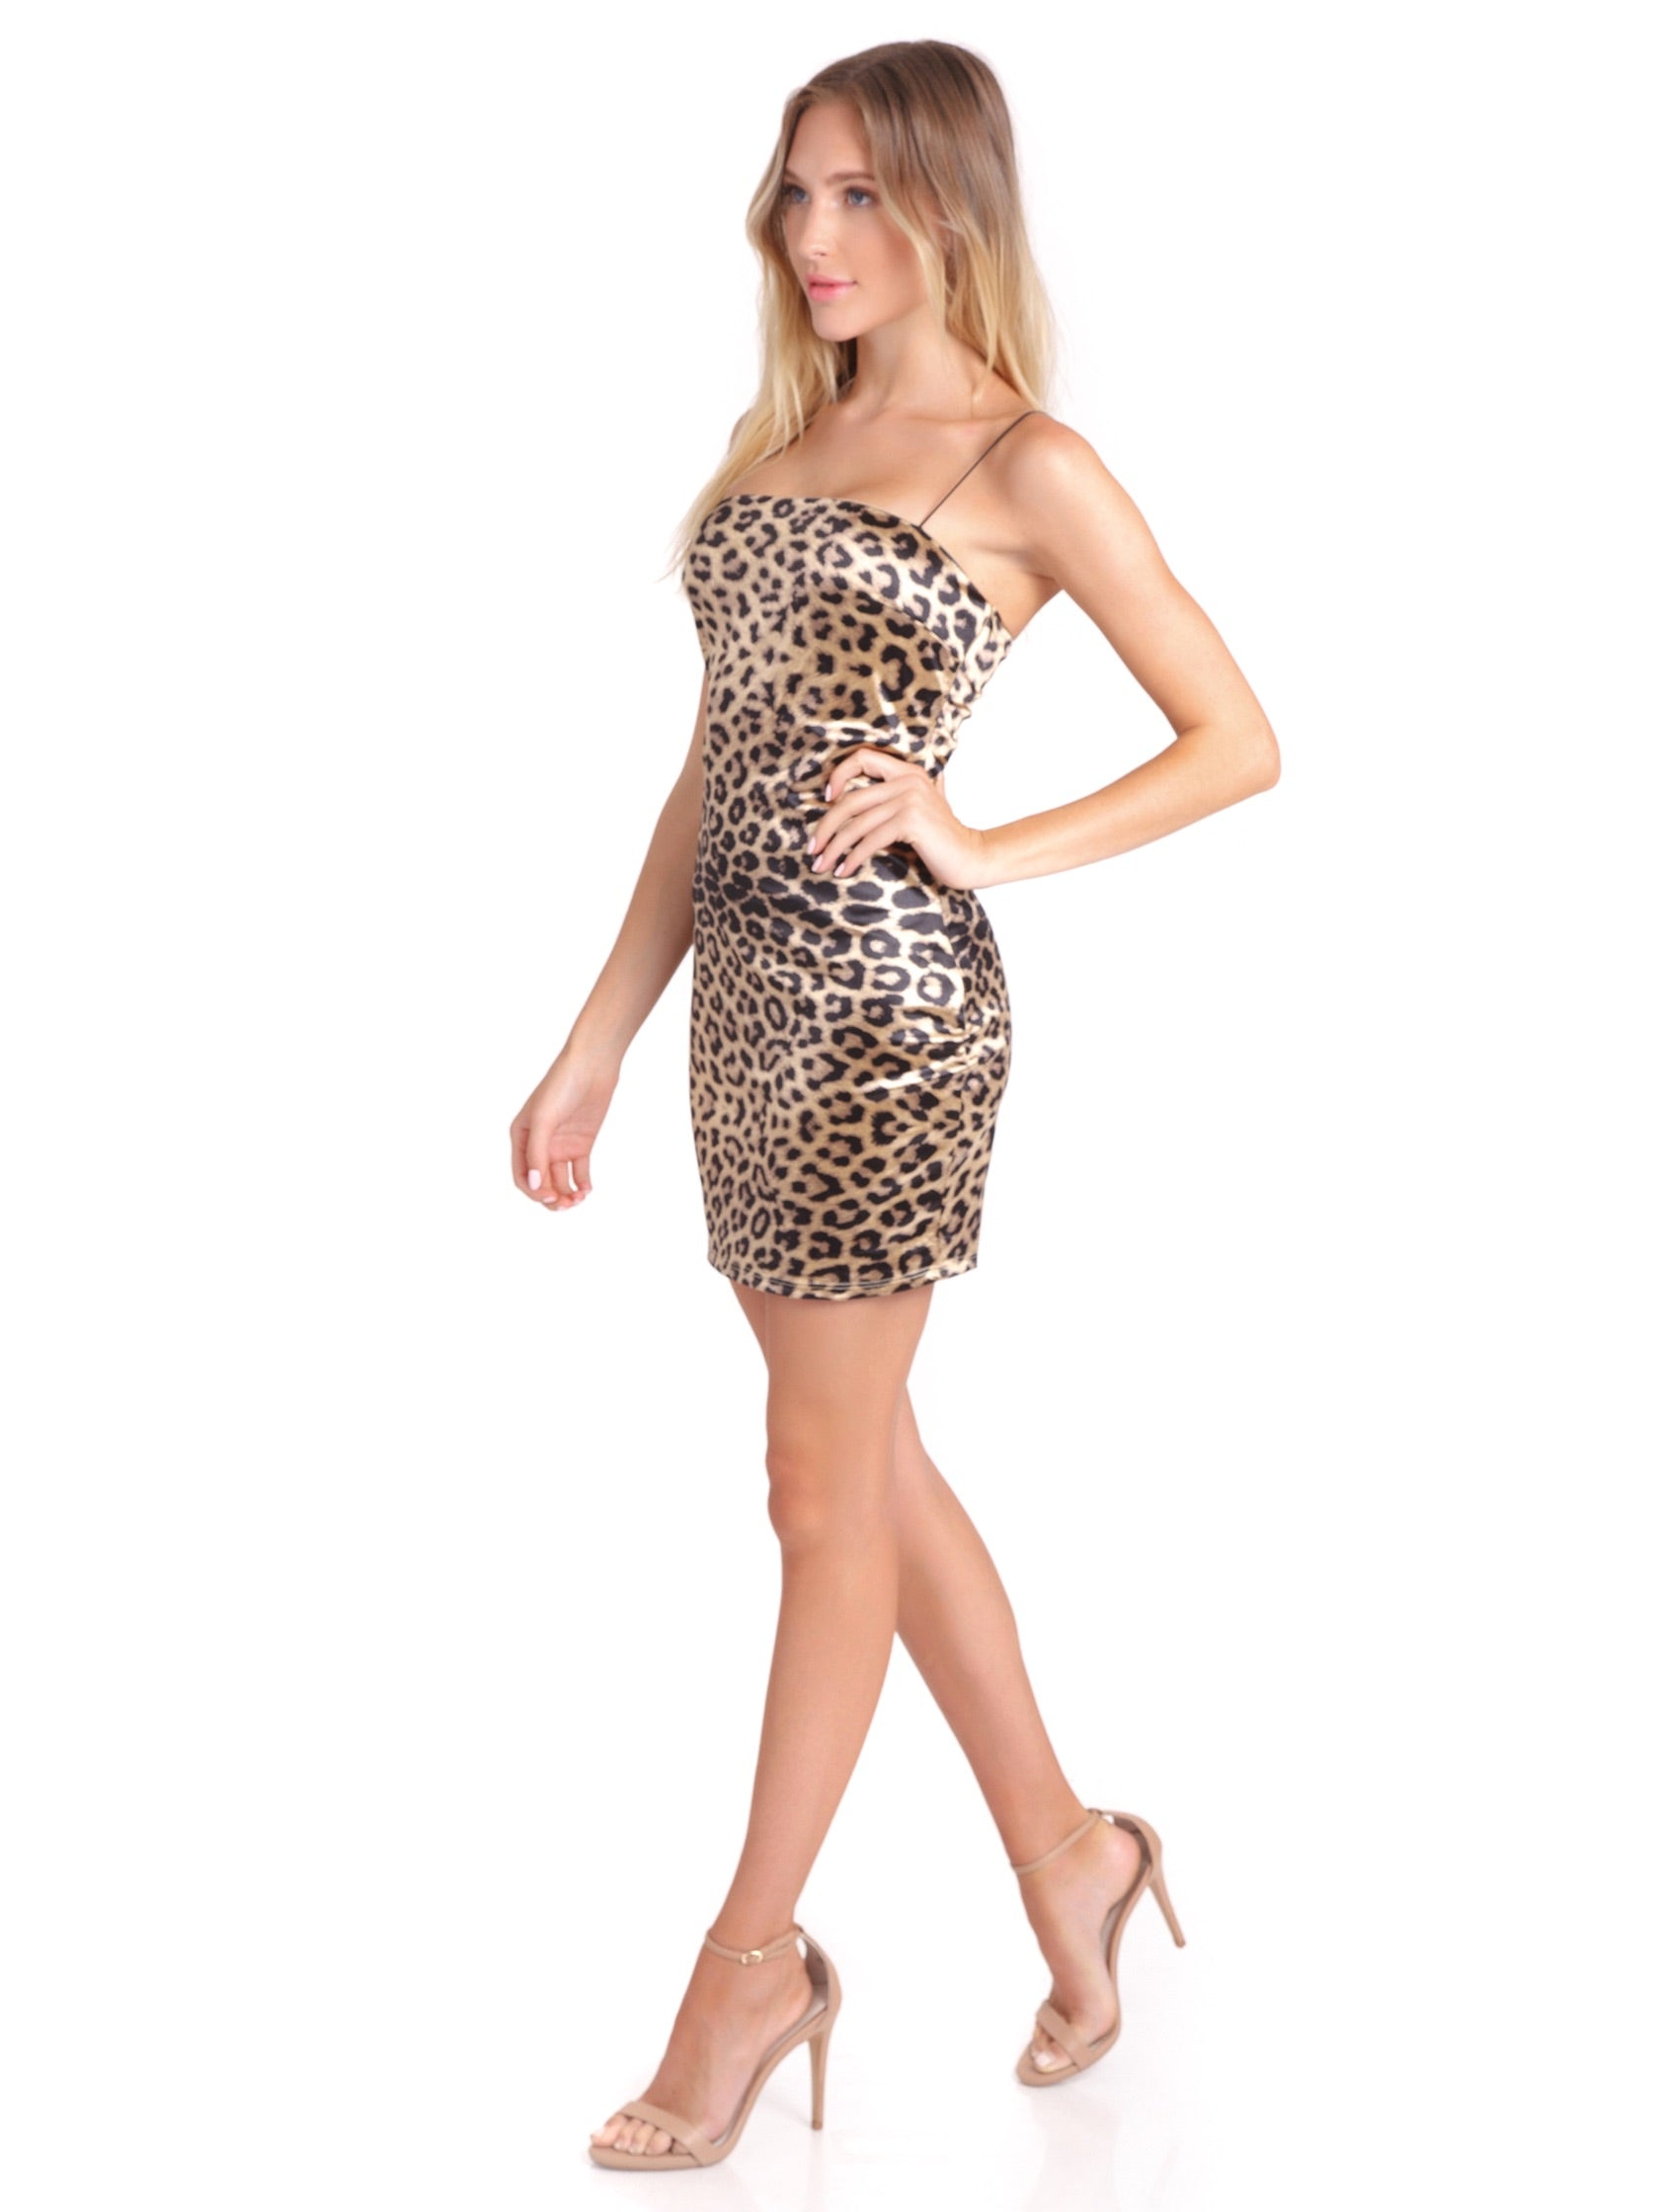 Woman wearing a dress rental from FashionPass called Cheetah Girl Mini Dress